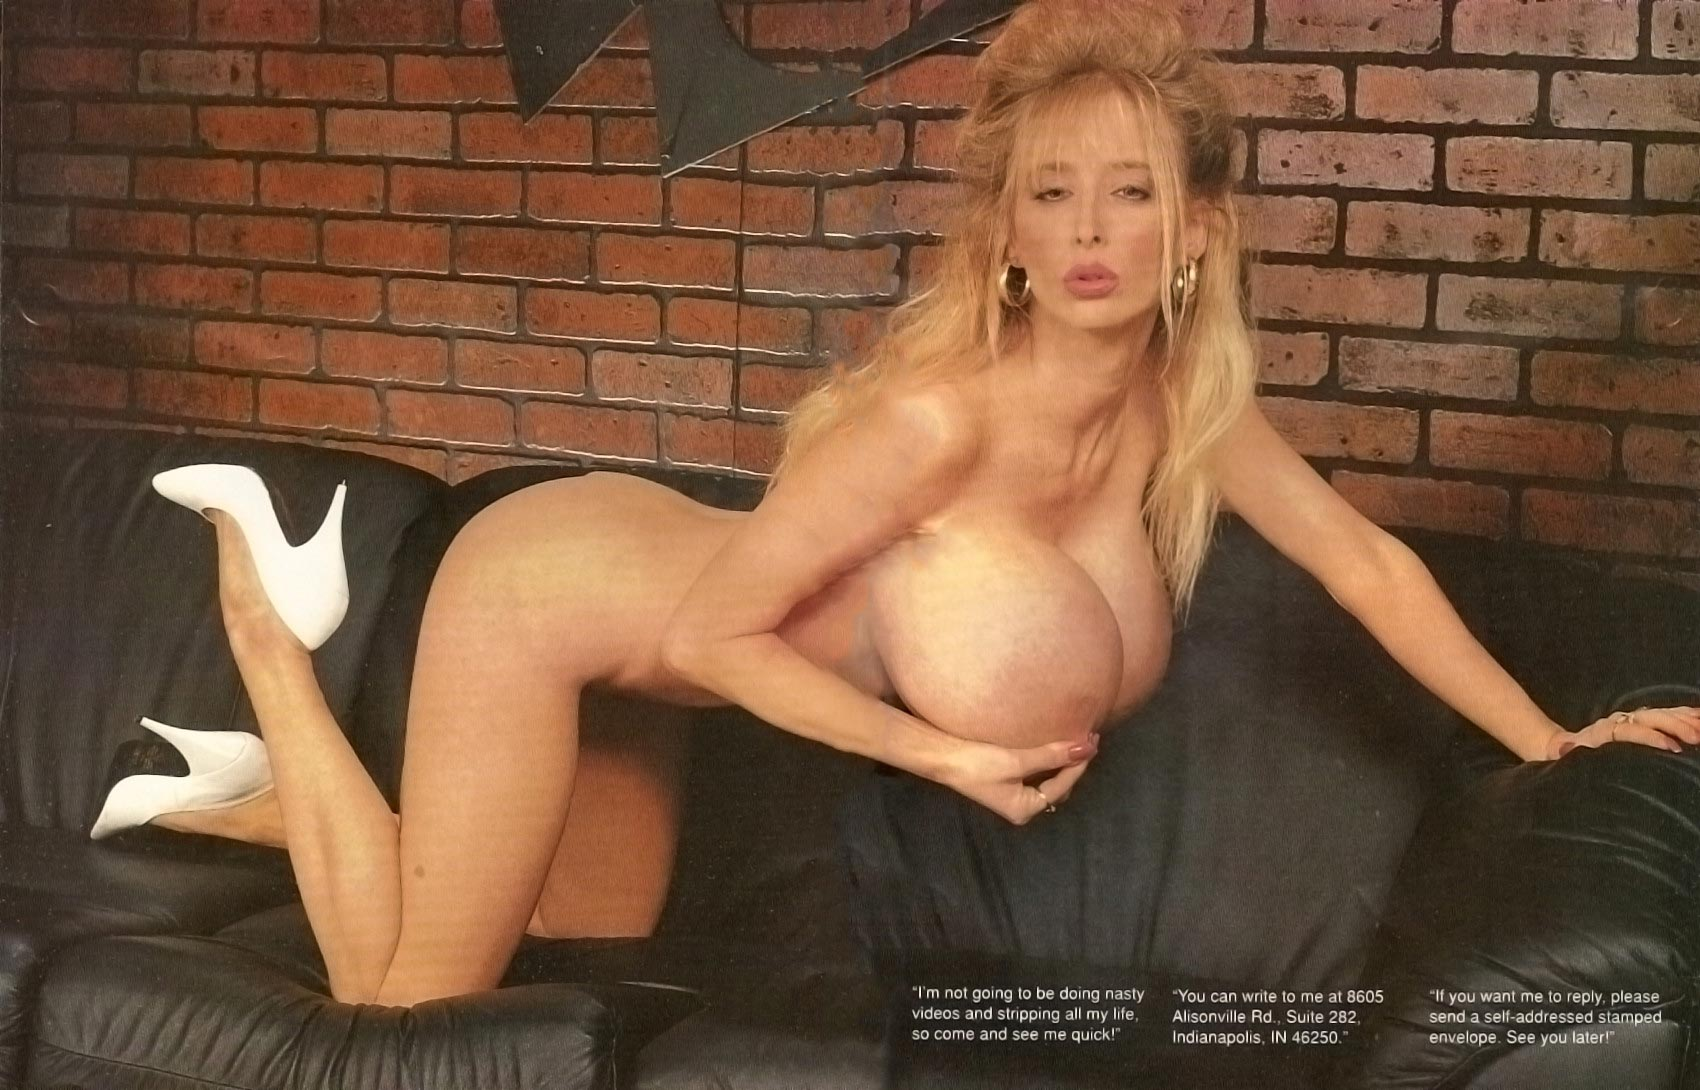 wendy-whoppers-classic-giant-tits-in-a-magazine6